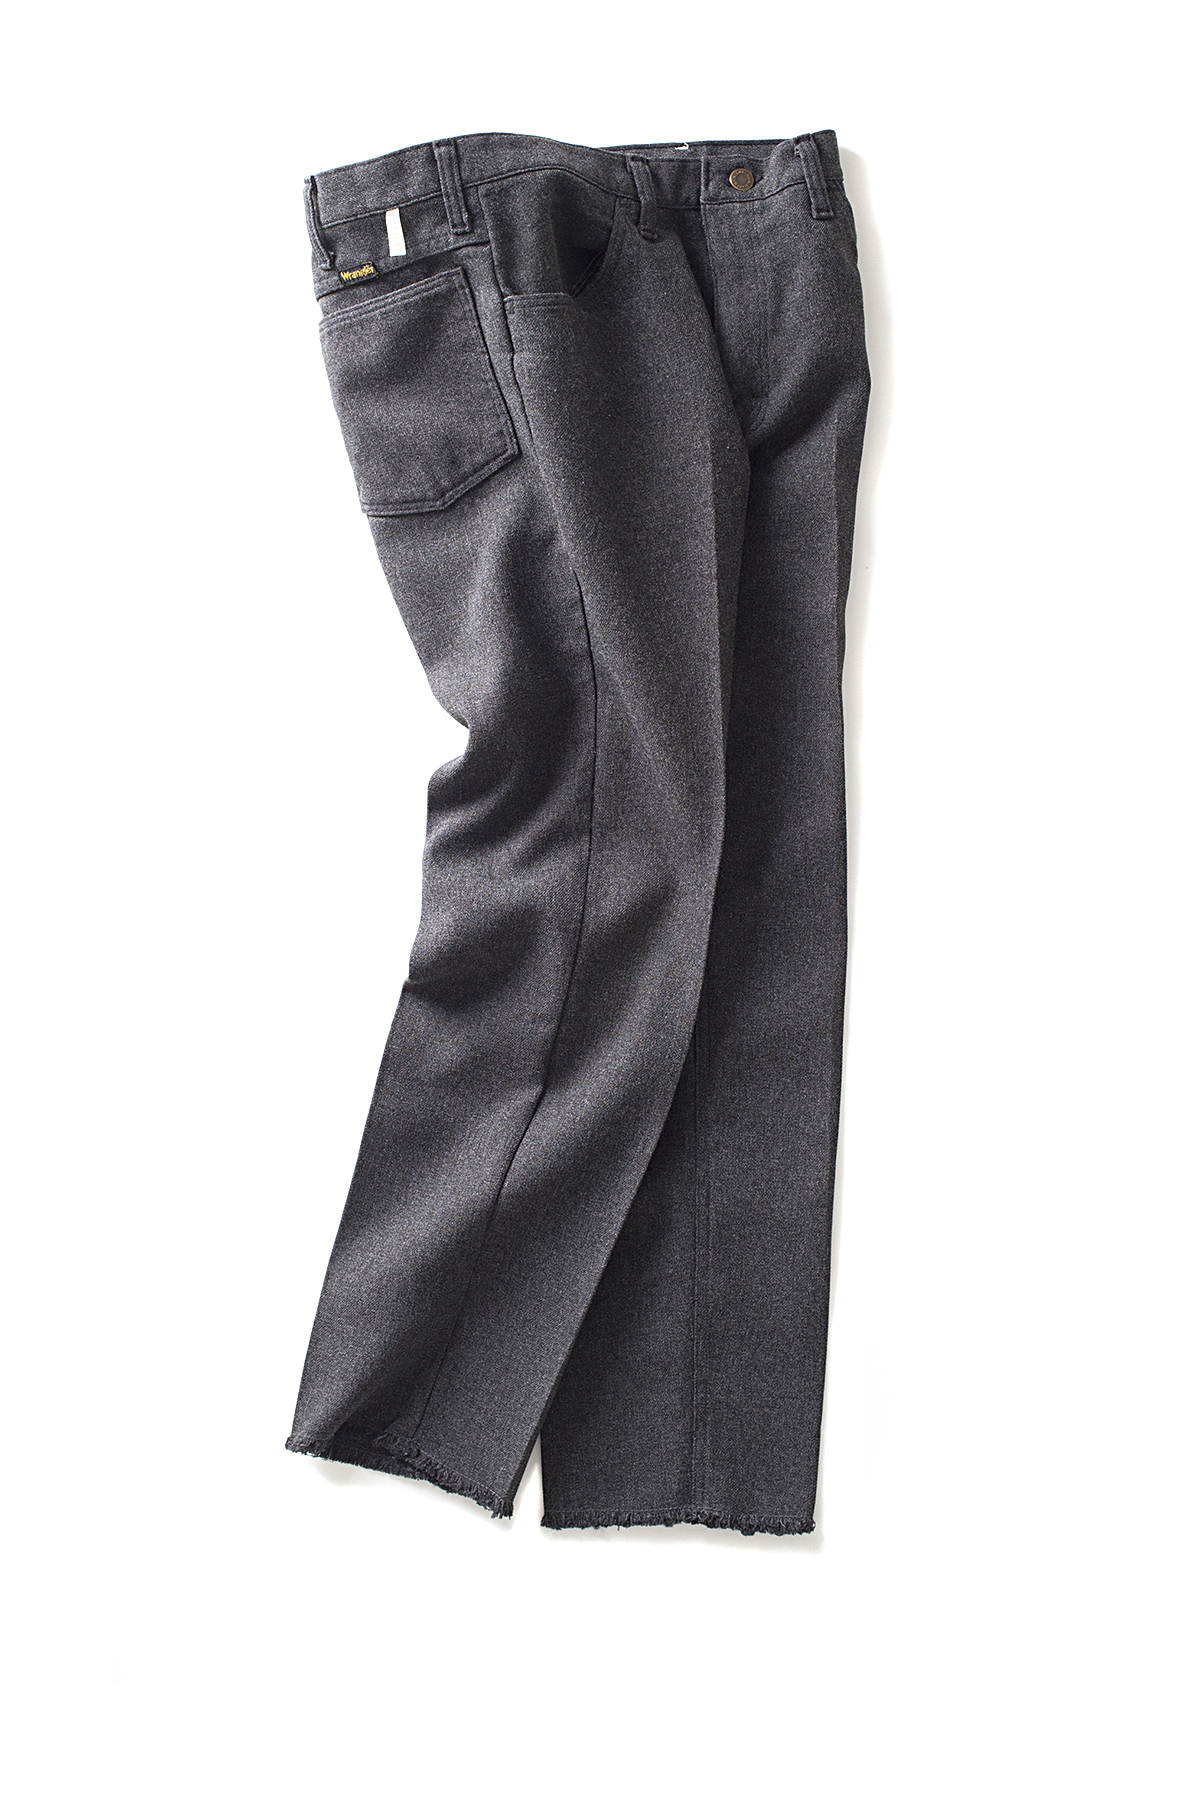 HEXICO : Ex. Wrancher Cut Off Trousers (Charcoal)